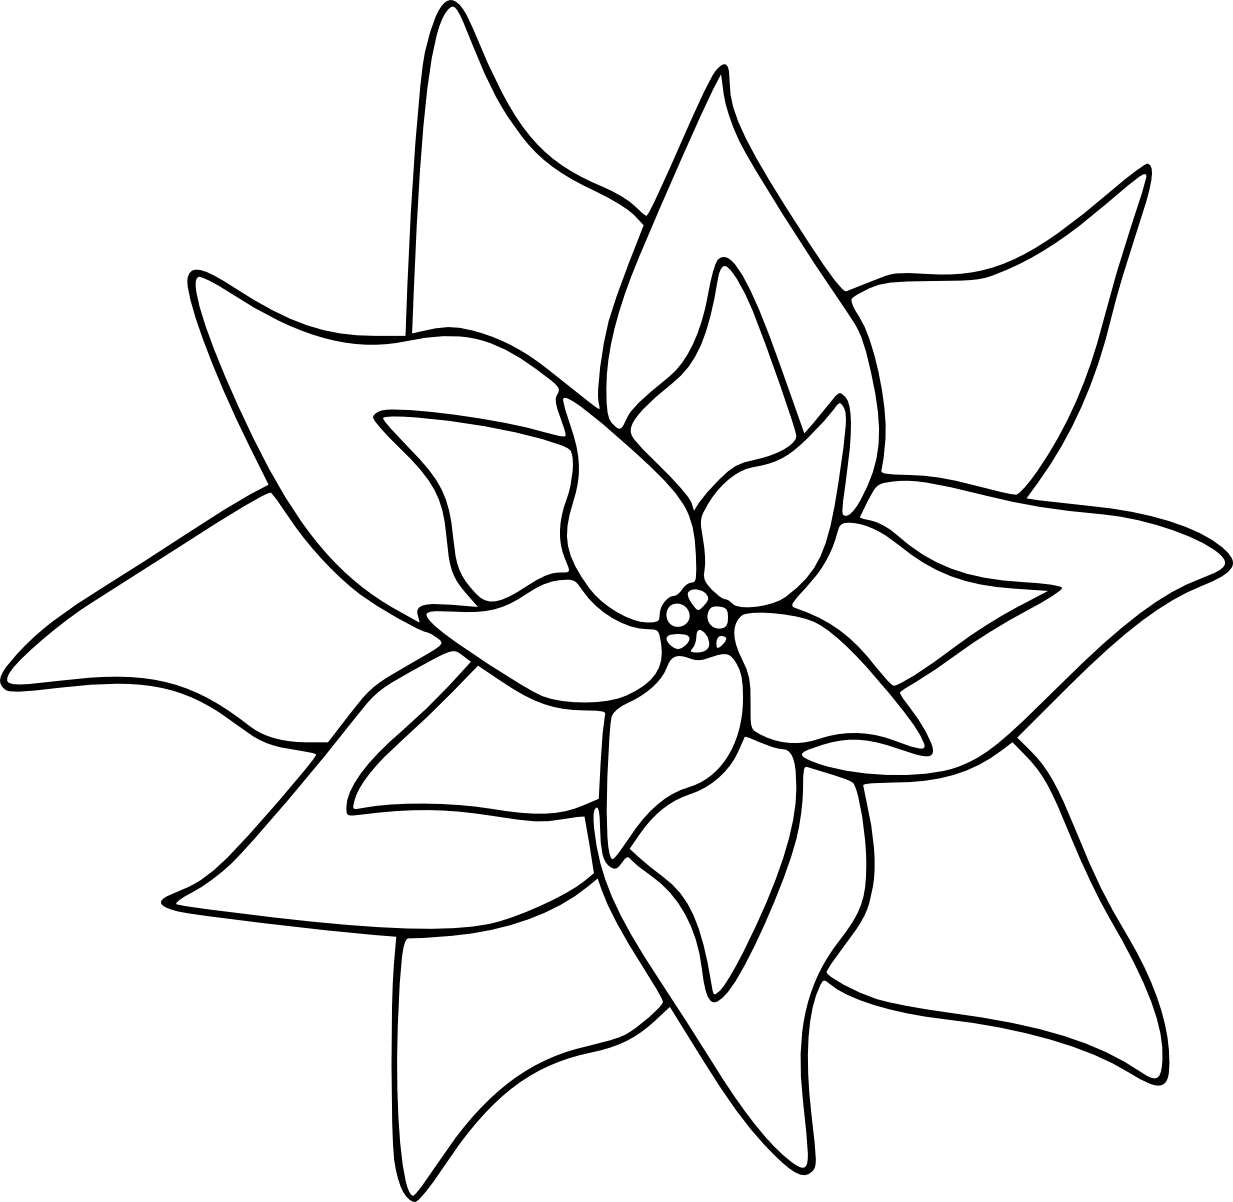 poinsettias clipart outline